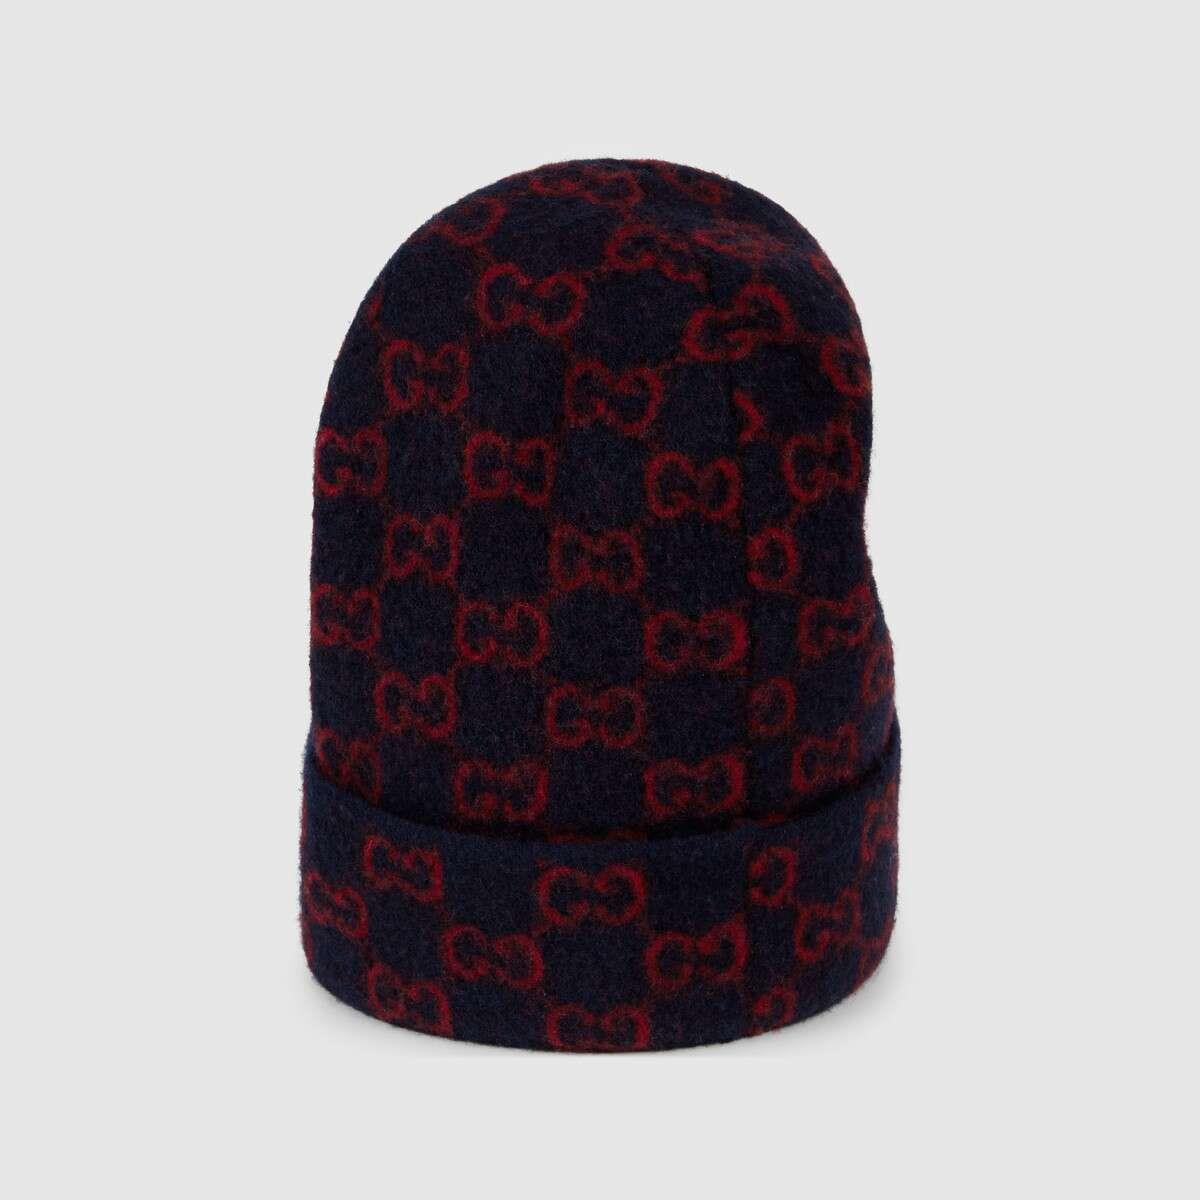 GG wool hat